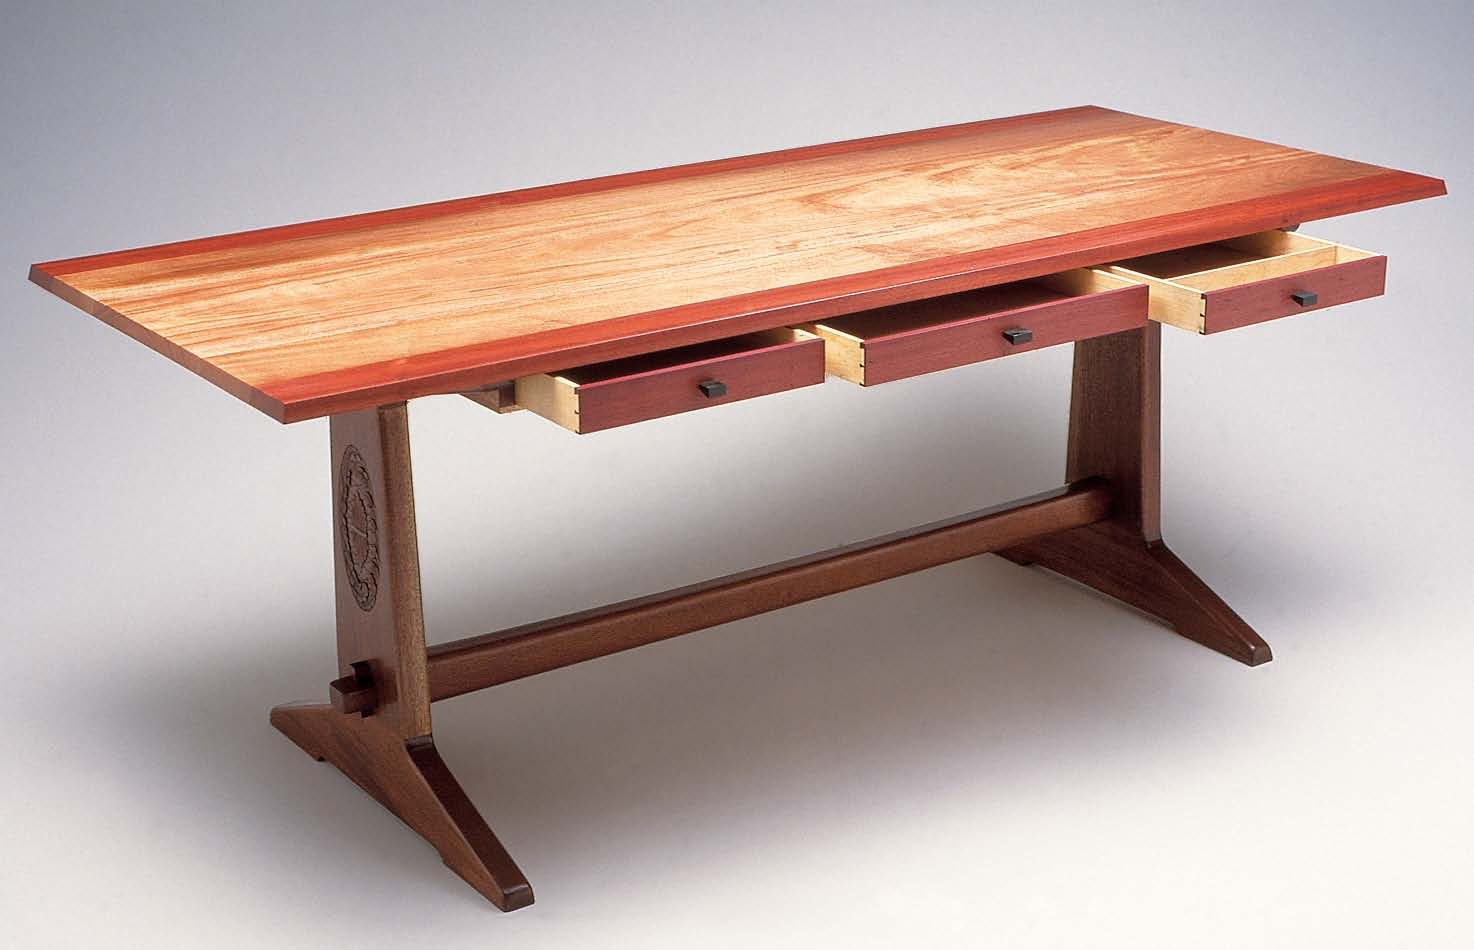 Make a DIY trestle table with this tutorial that shows how to make your own trestle table plans.